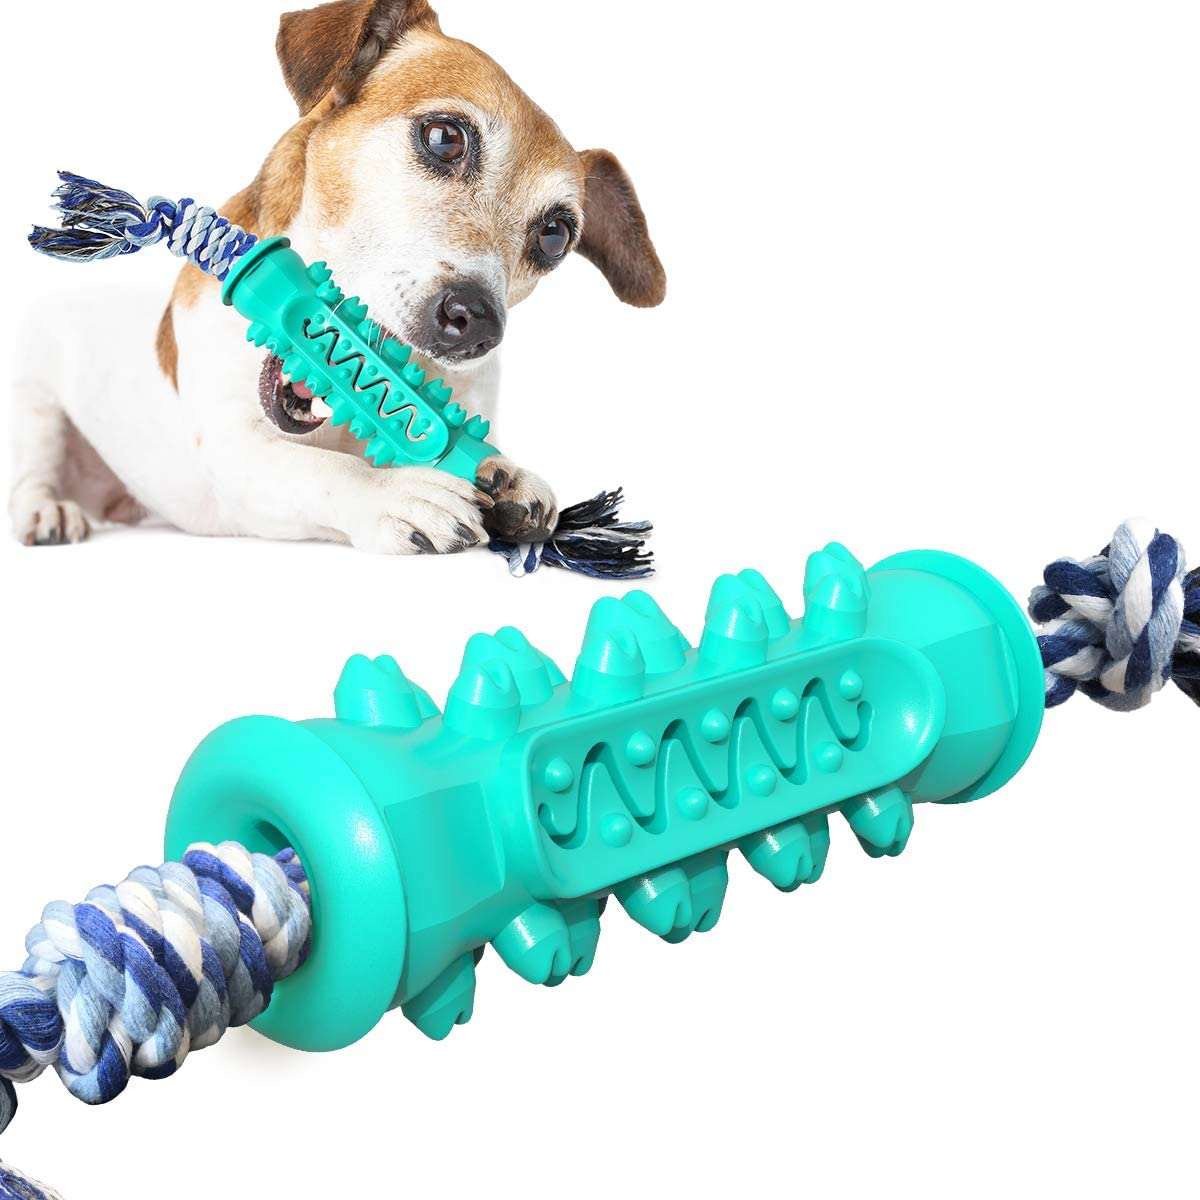 Dog Max 54% OFF Chew Toys for Aggressive Toothbrush Chewers Toy Outlet SALE S